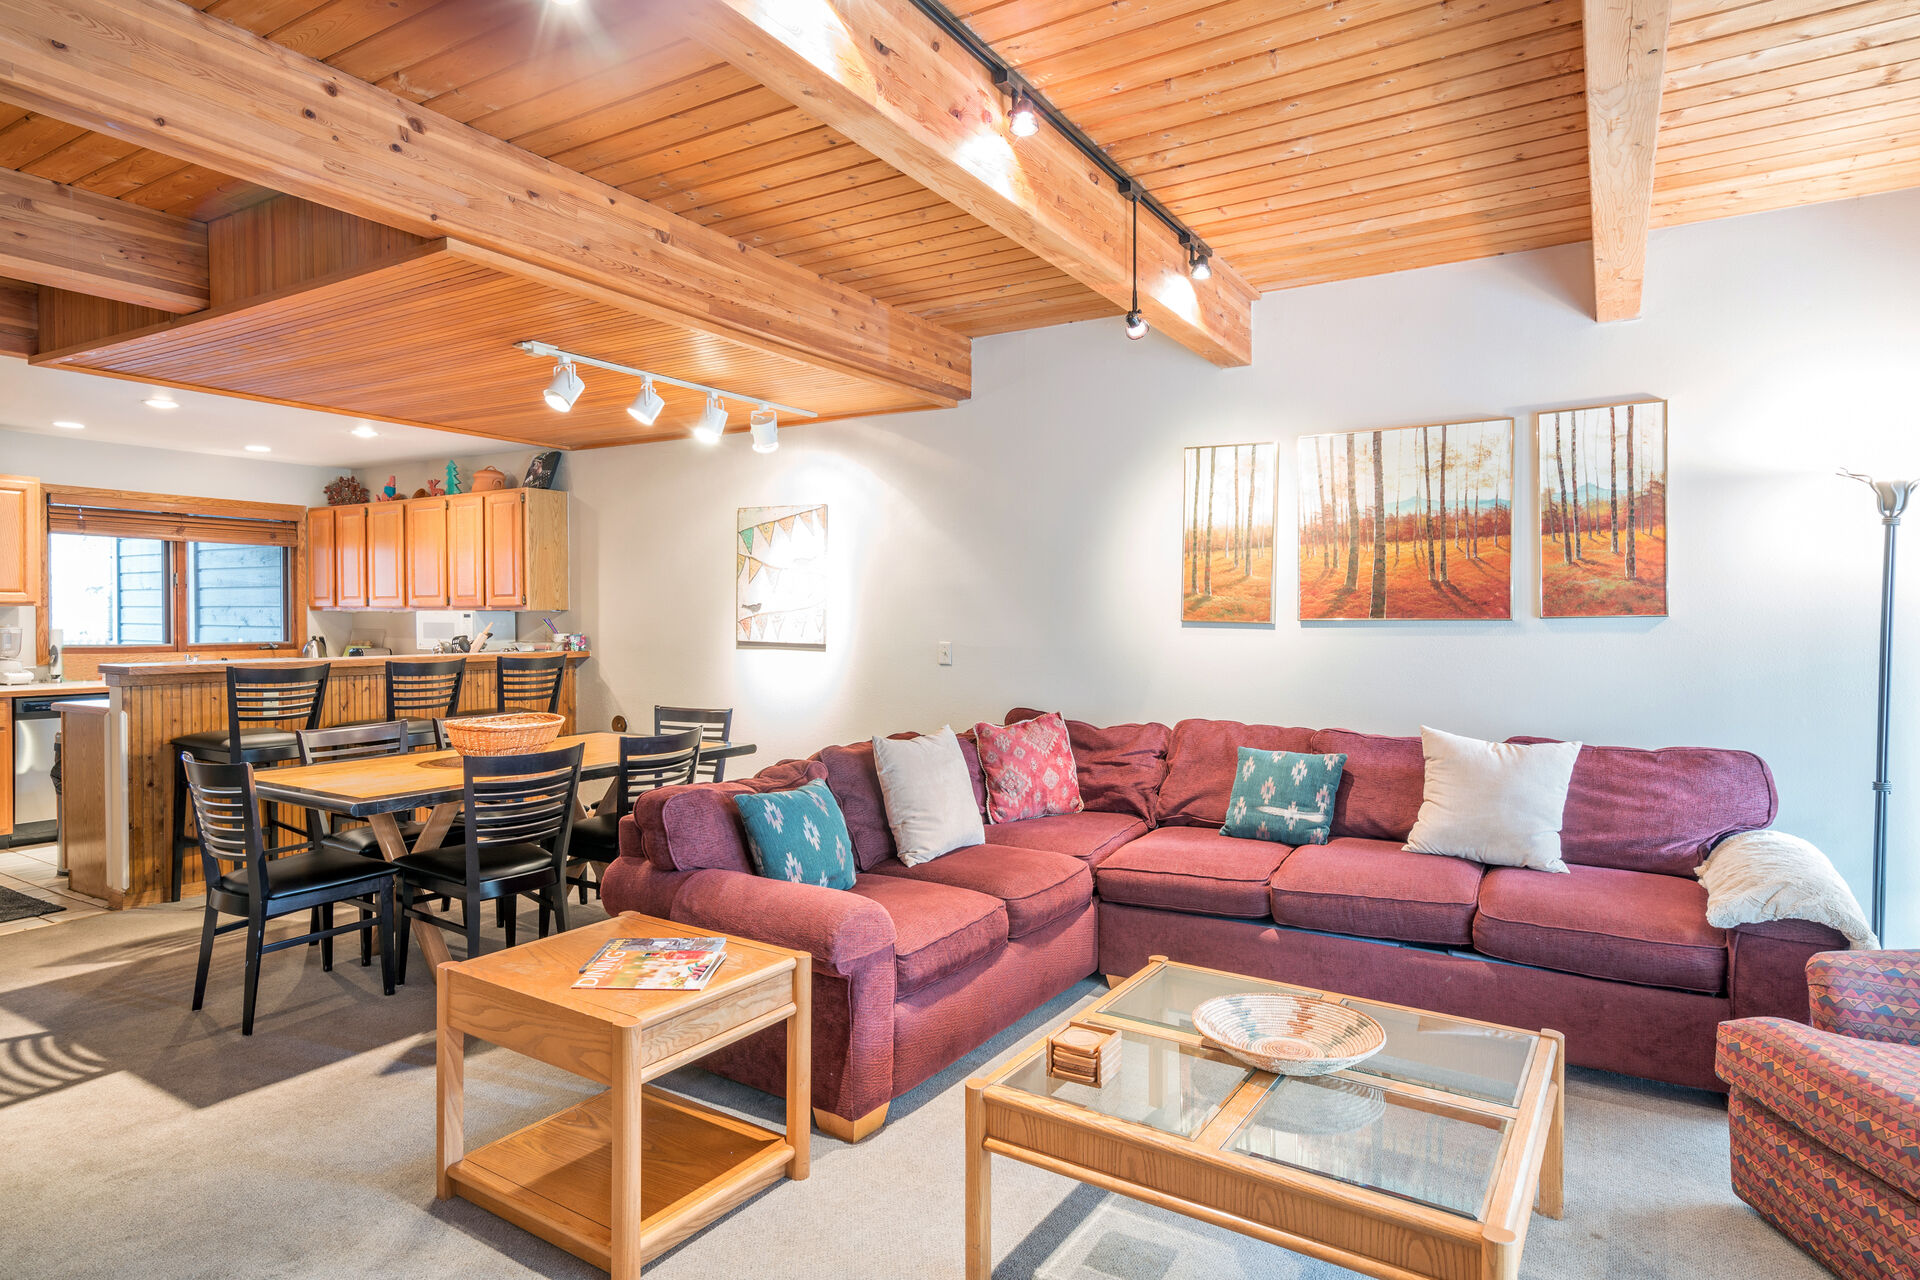 Spacious living and dining room with wood ceilings